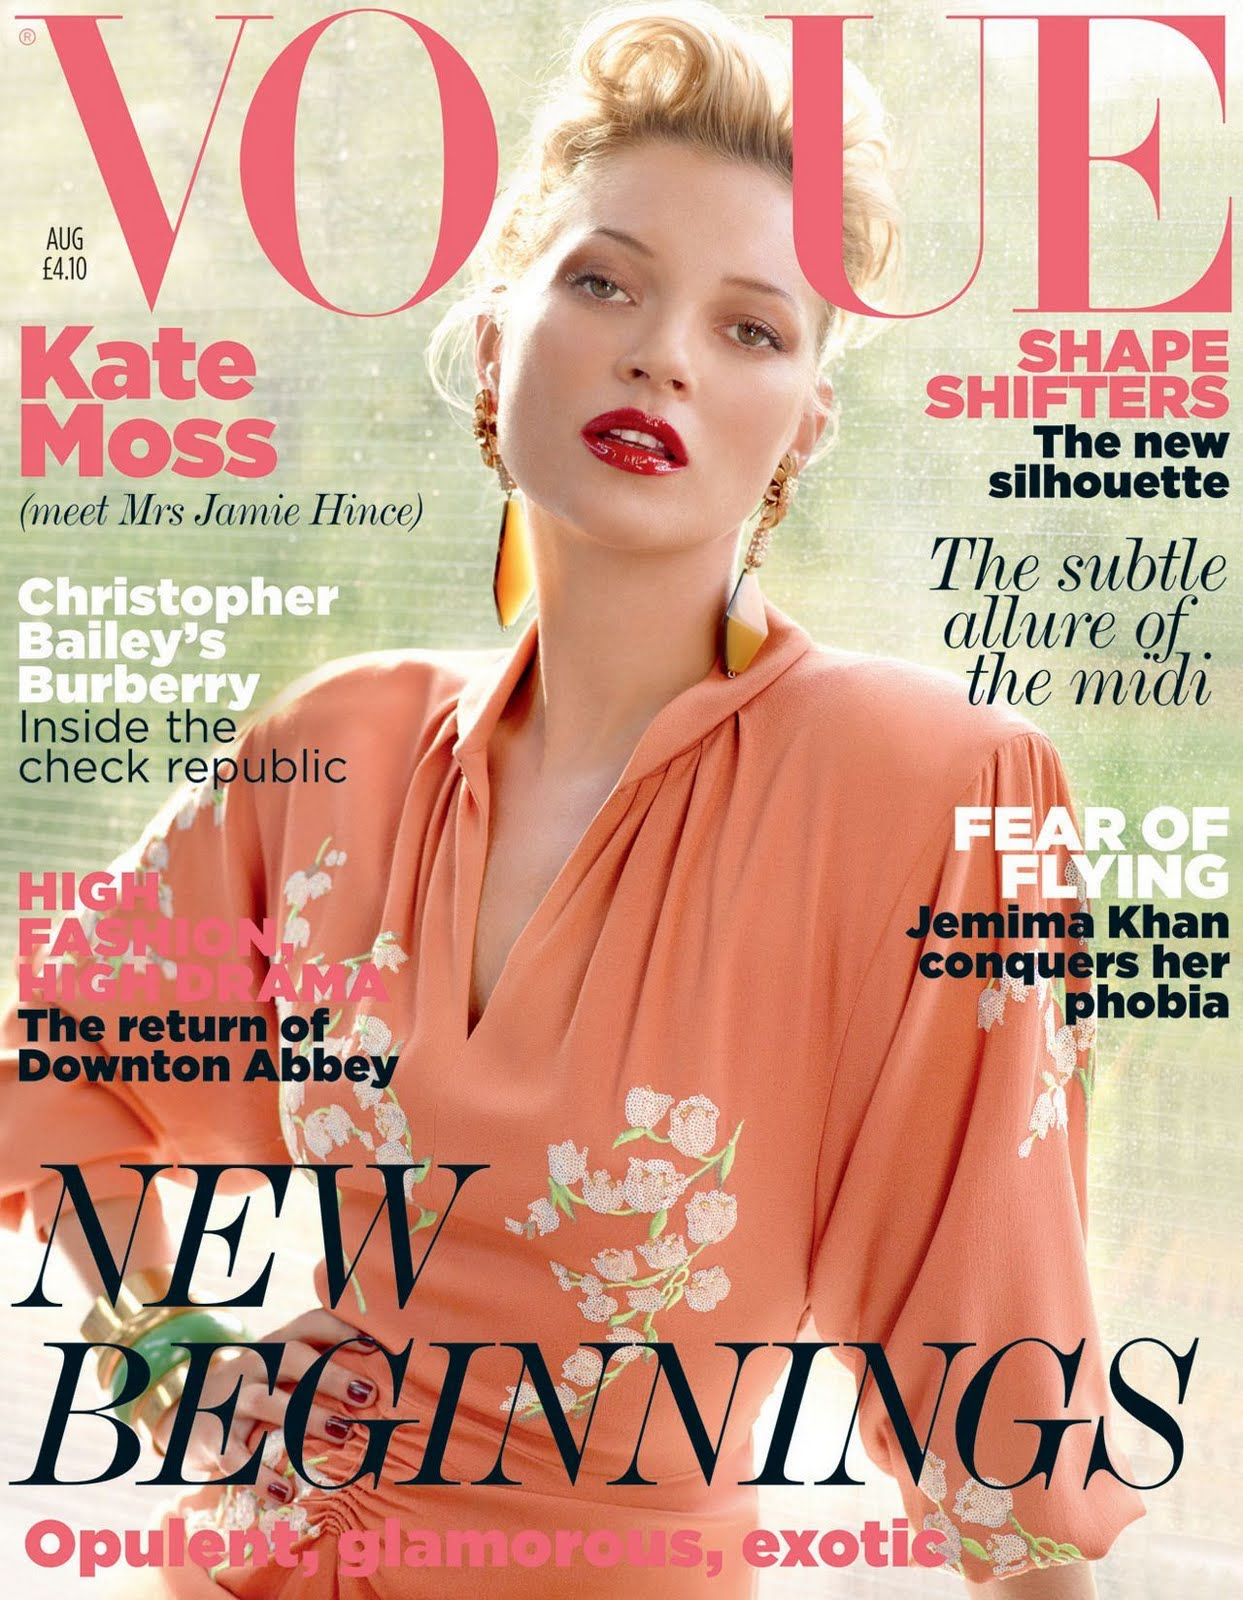 http://3.bp.blogspot.com/-nWPF-4odgfk/Tjxid4j9CXI/AAAAAAAAAtk/03QfsigaNHI/s1600/Vogue-UK-Magazine-August-2011-Kate-Moss-Cover.jpg